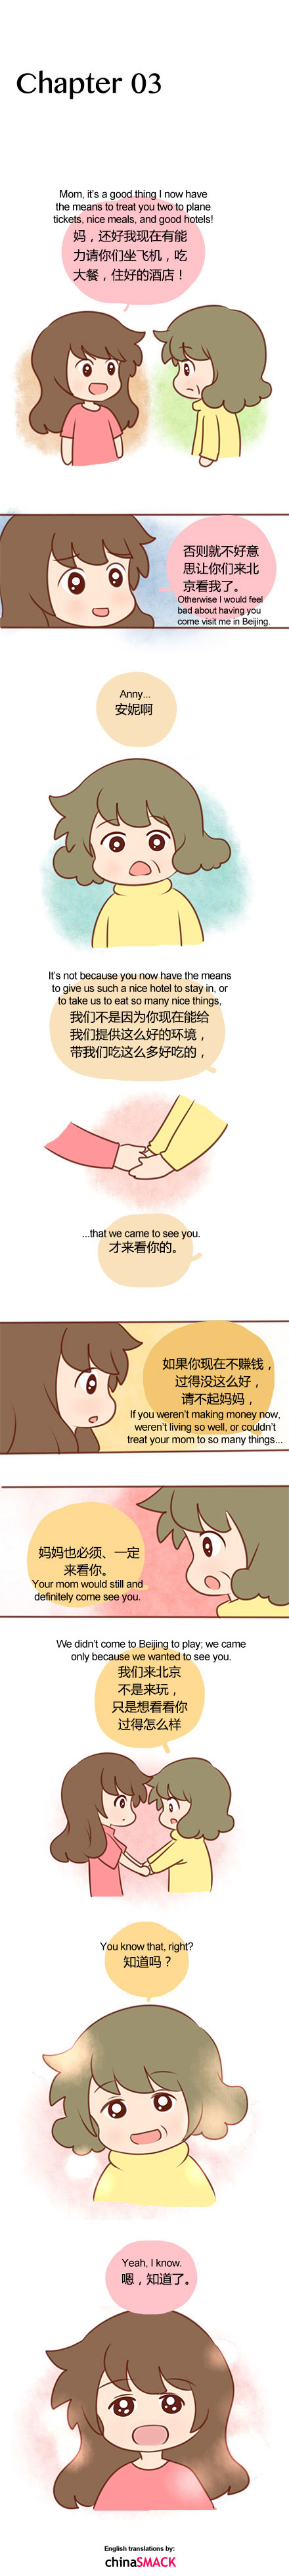 chinese-comic-greatanny-parents-visit-03-english-translation